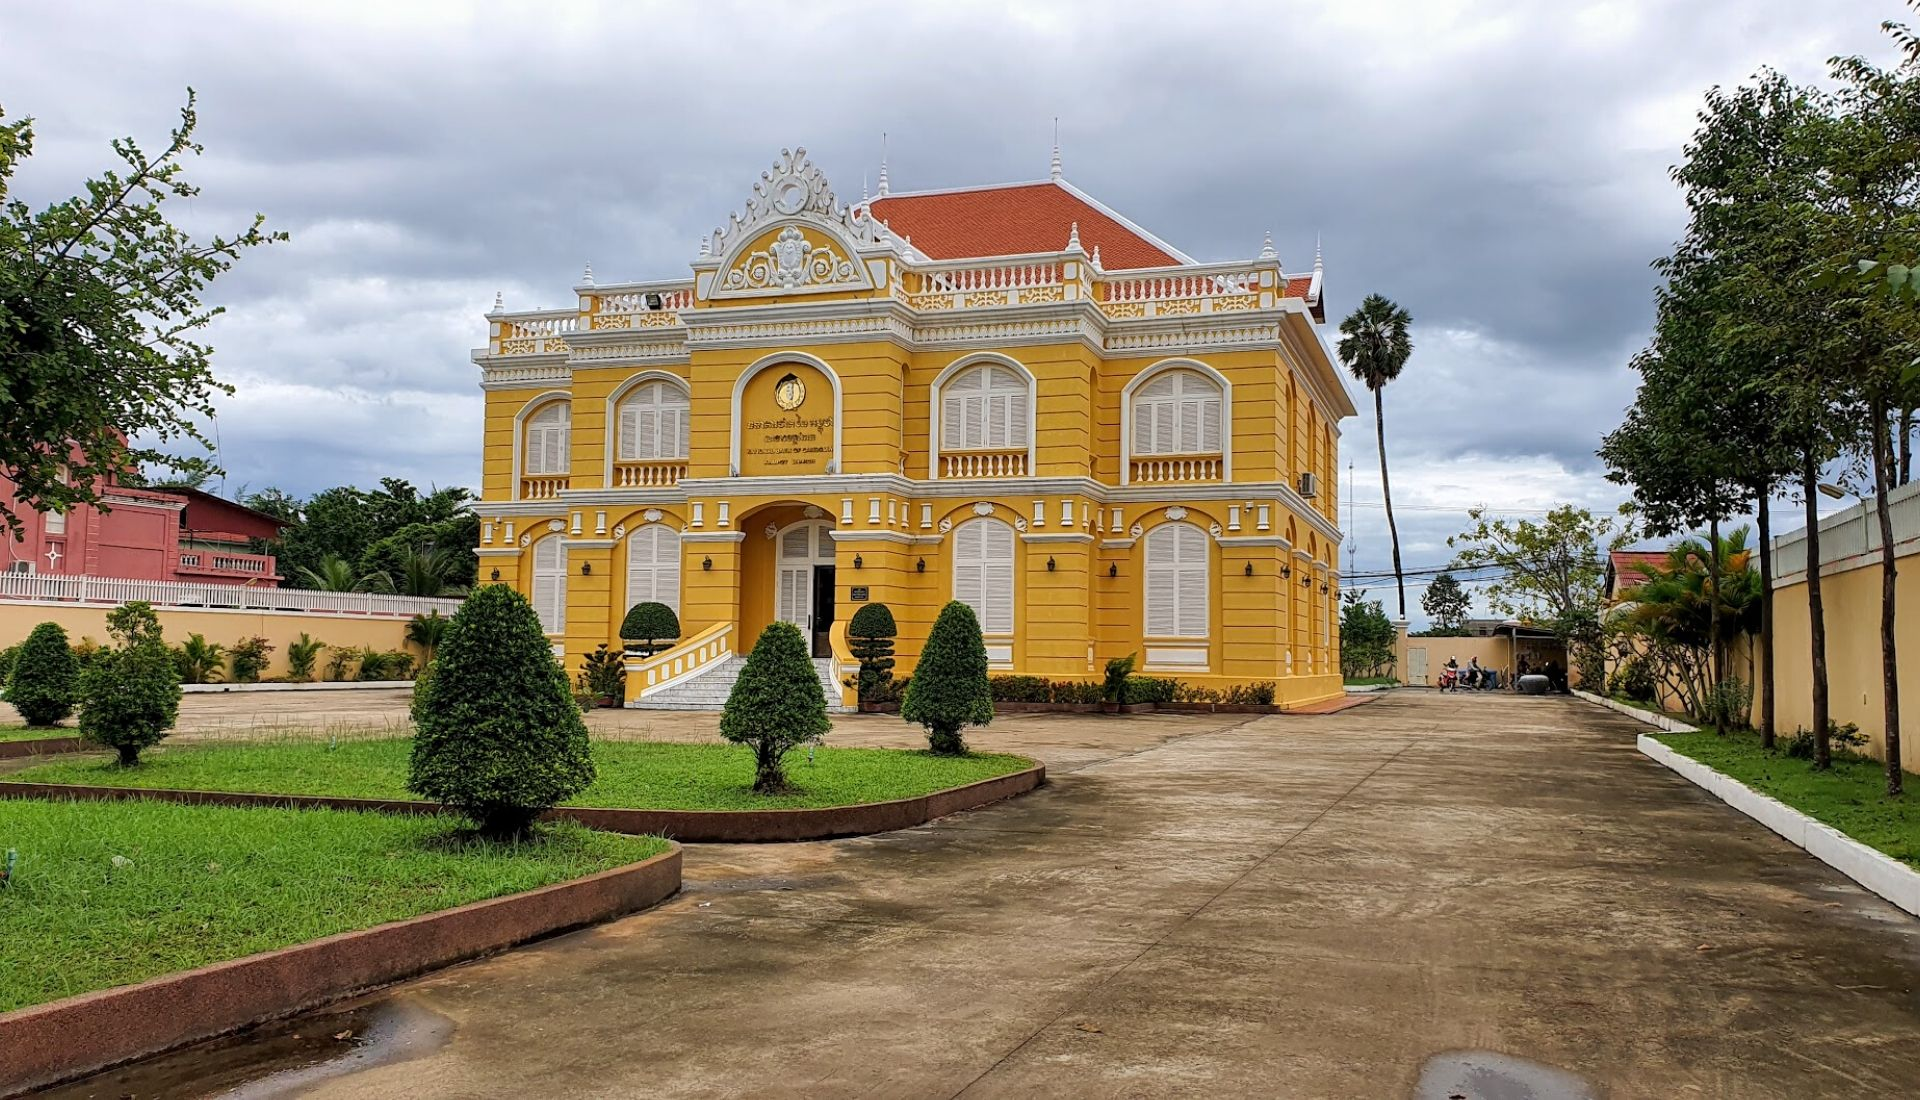 French Colonial Architecture in Kampot